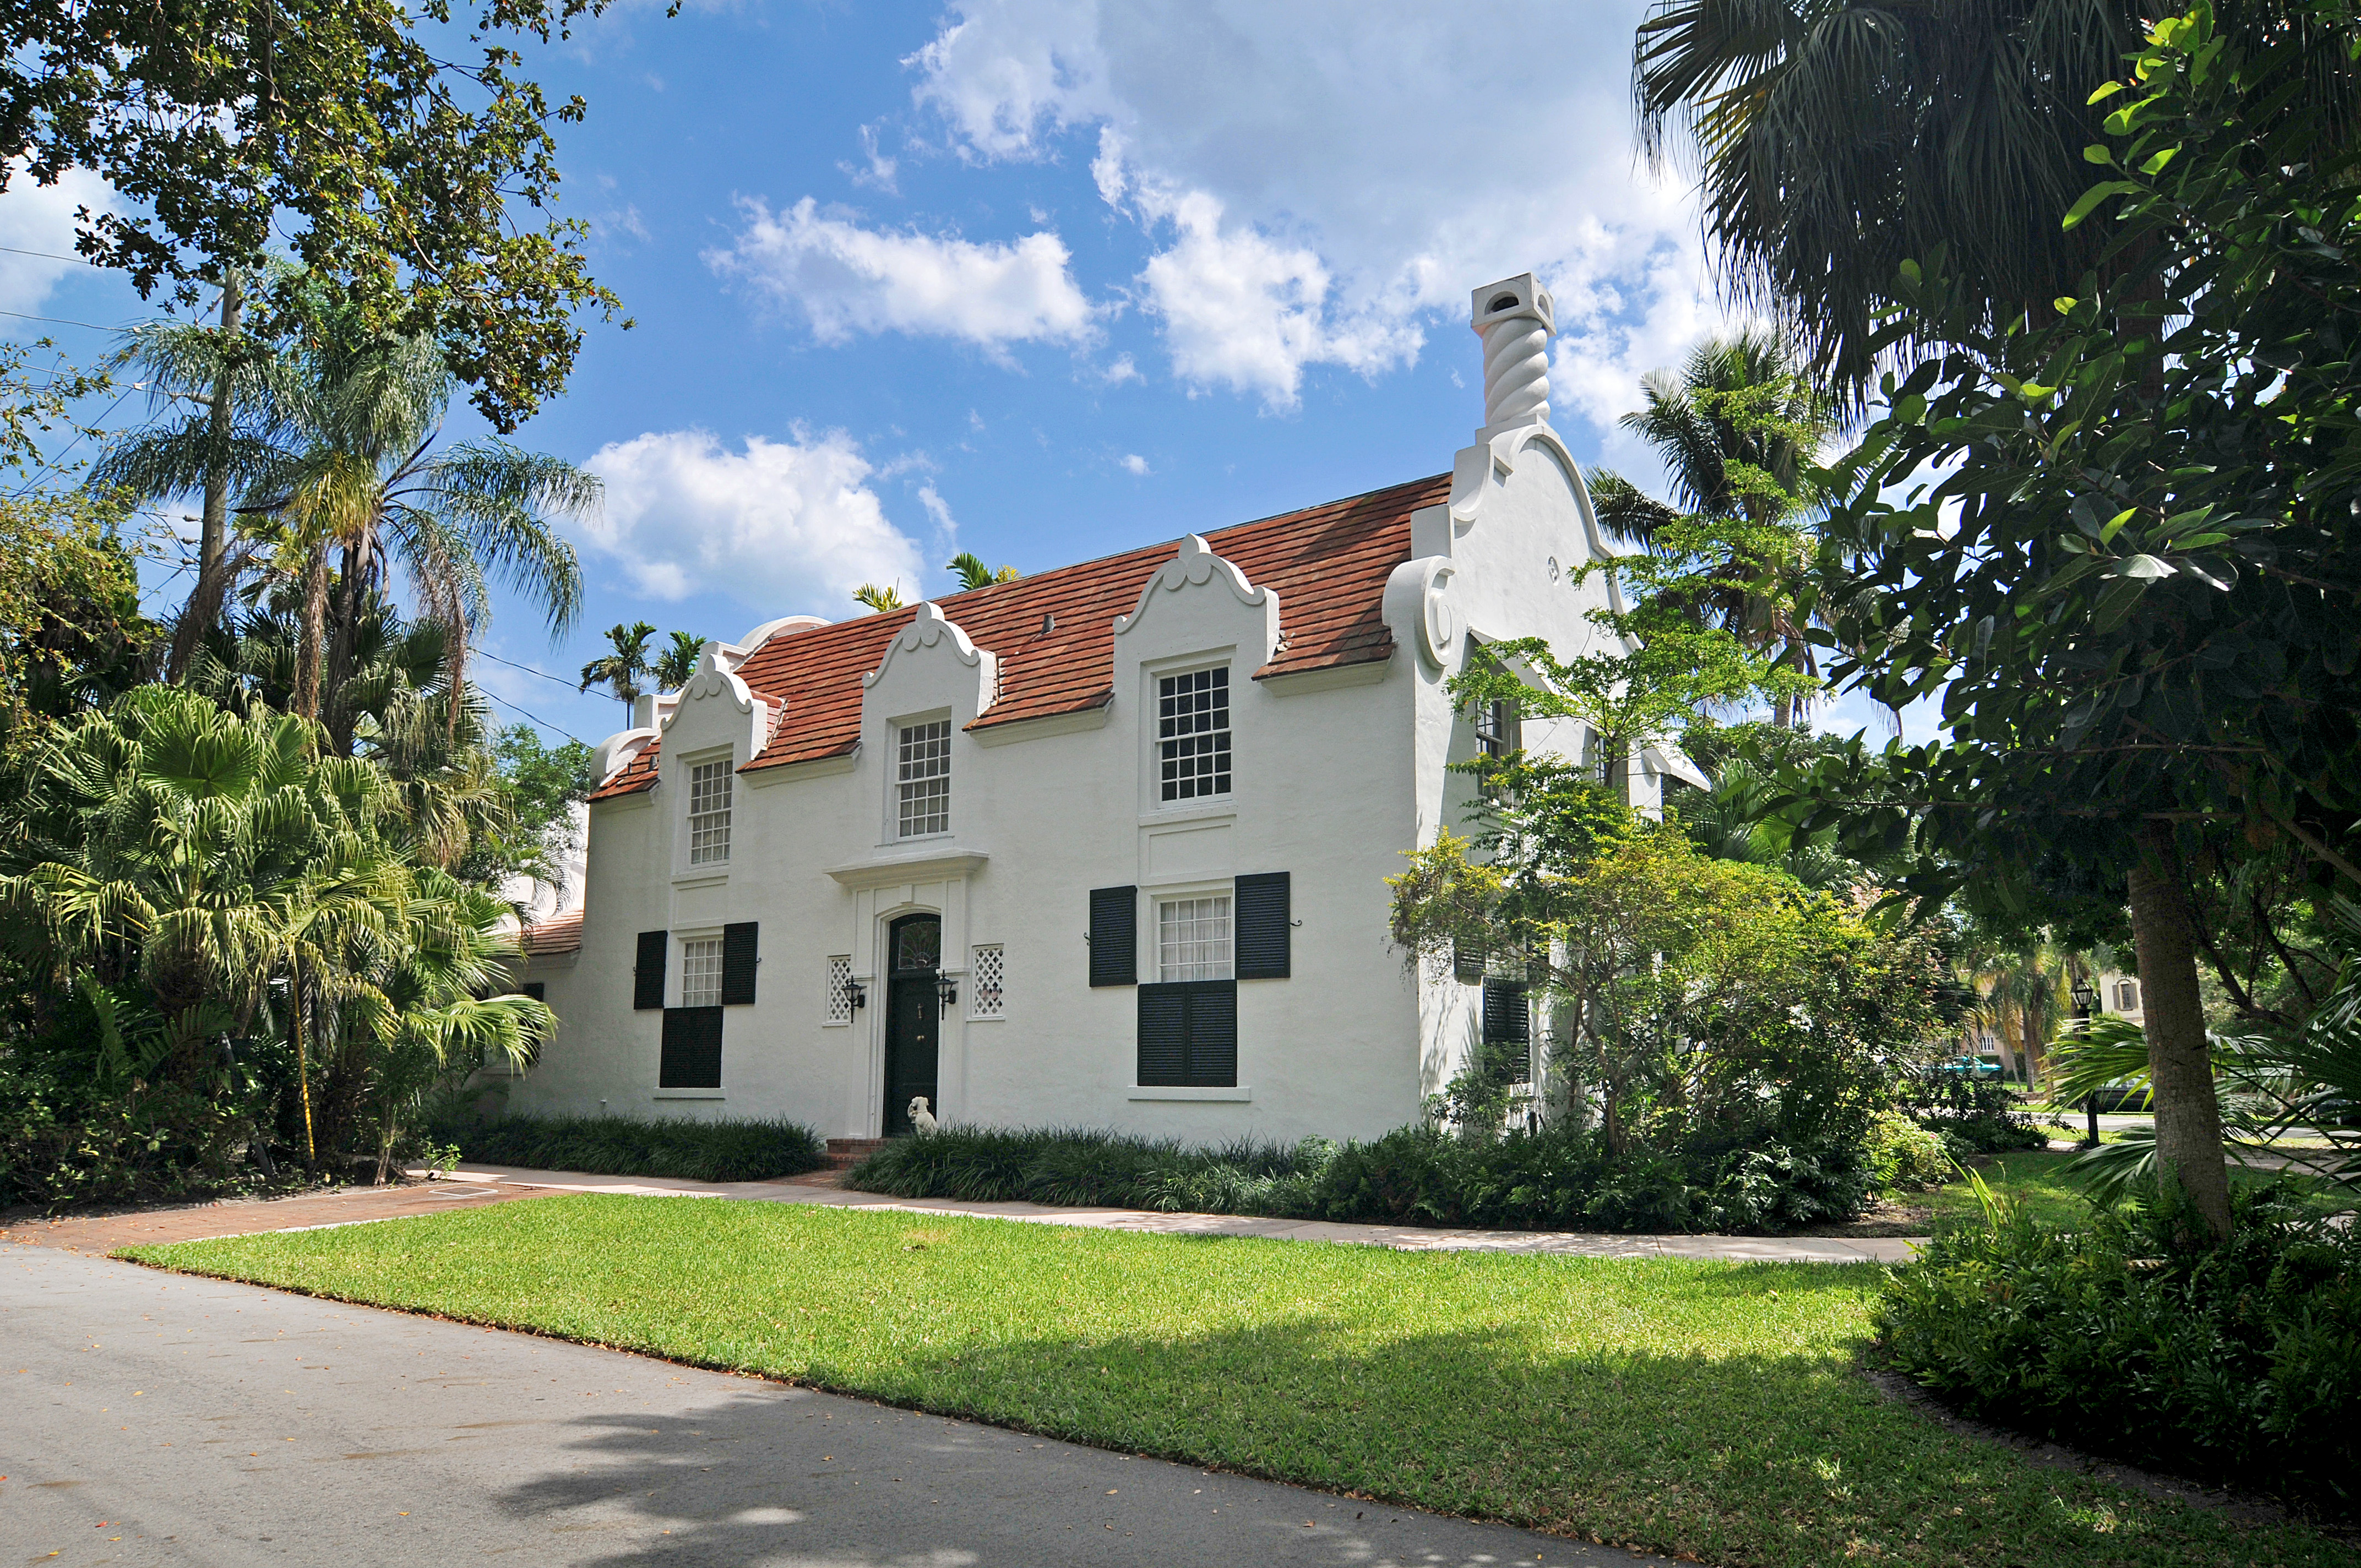 Residential Real Estate : Dutch village home coral gables nrt southeast coldwell